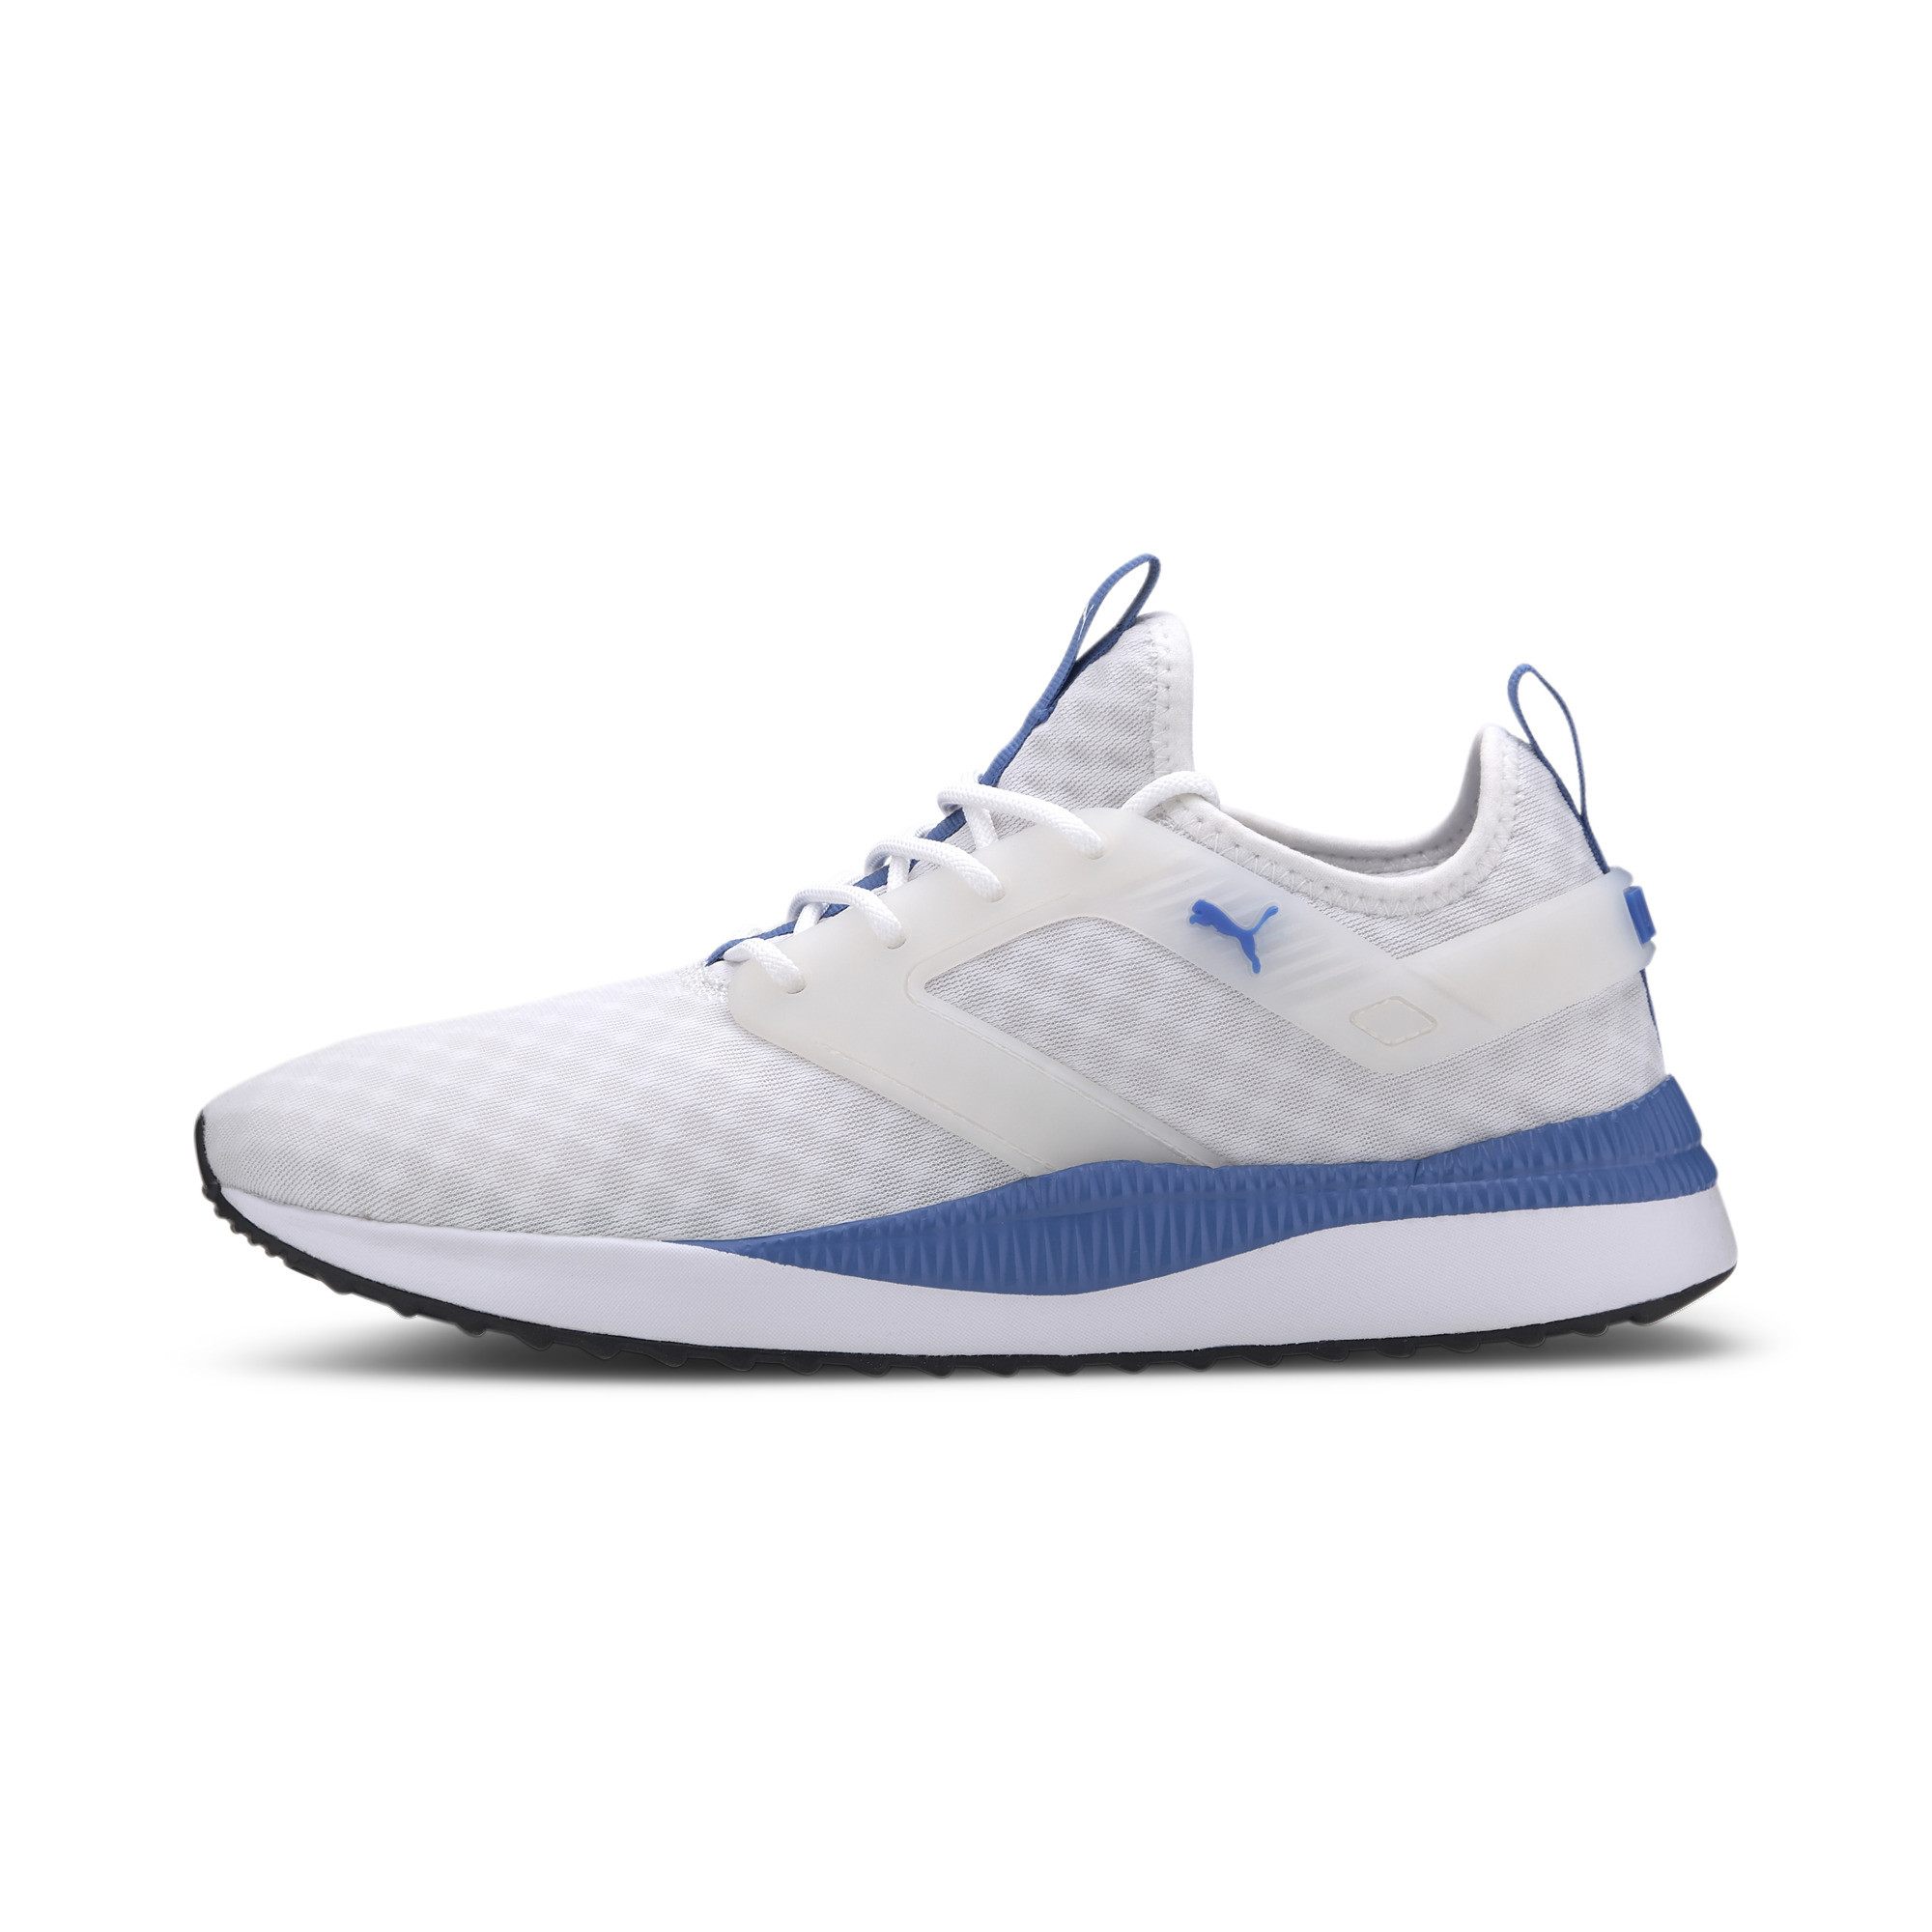 PUMA-Men-039-s-Pacer-Next-Excel-Core-Sneakers thumbnail 17